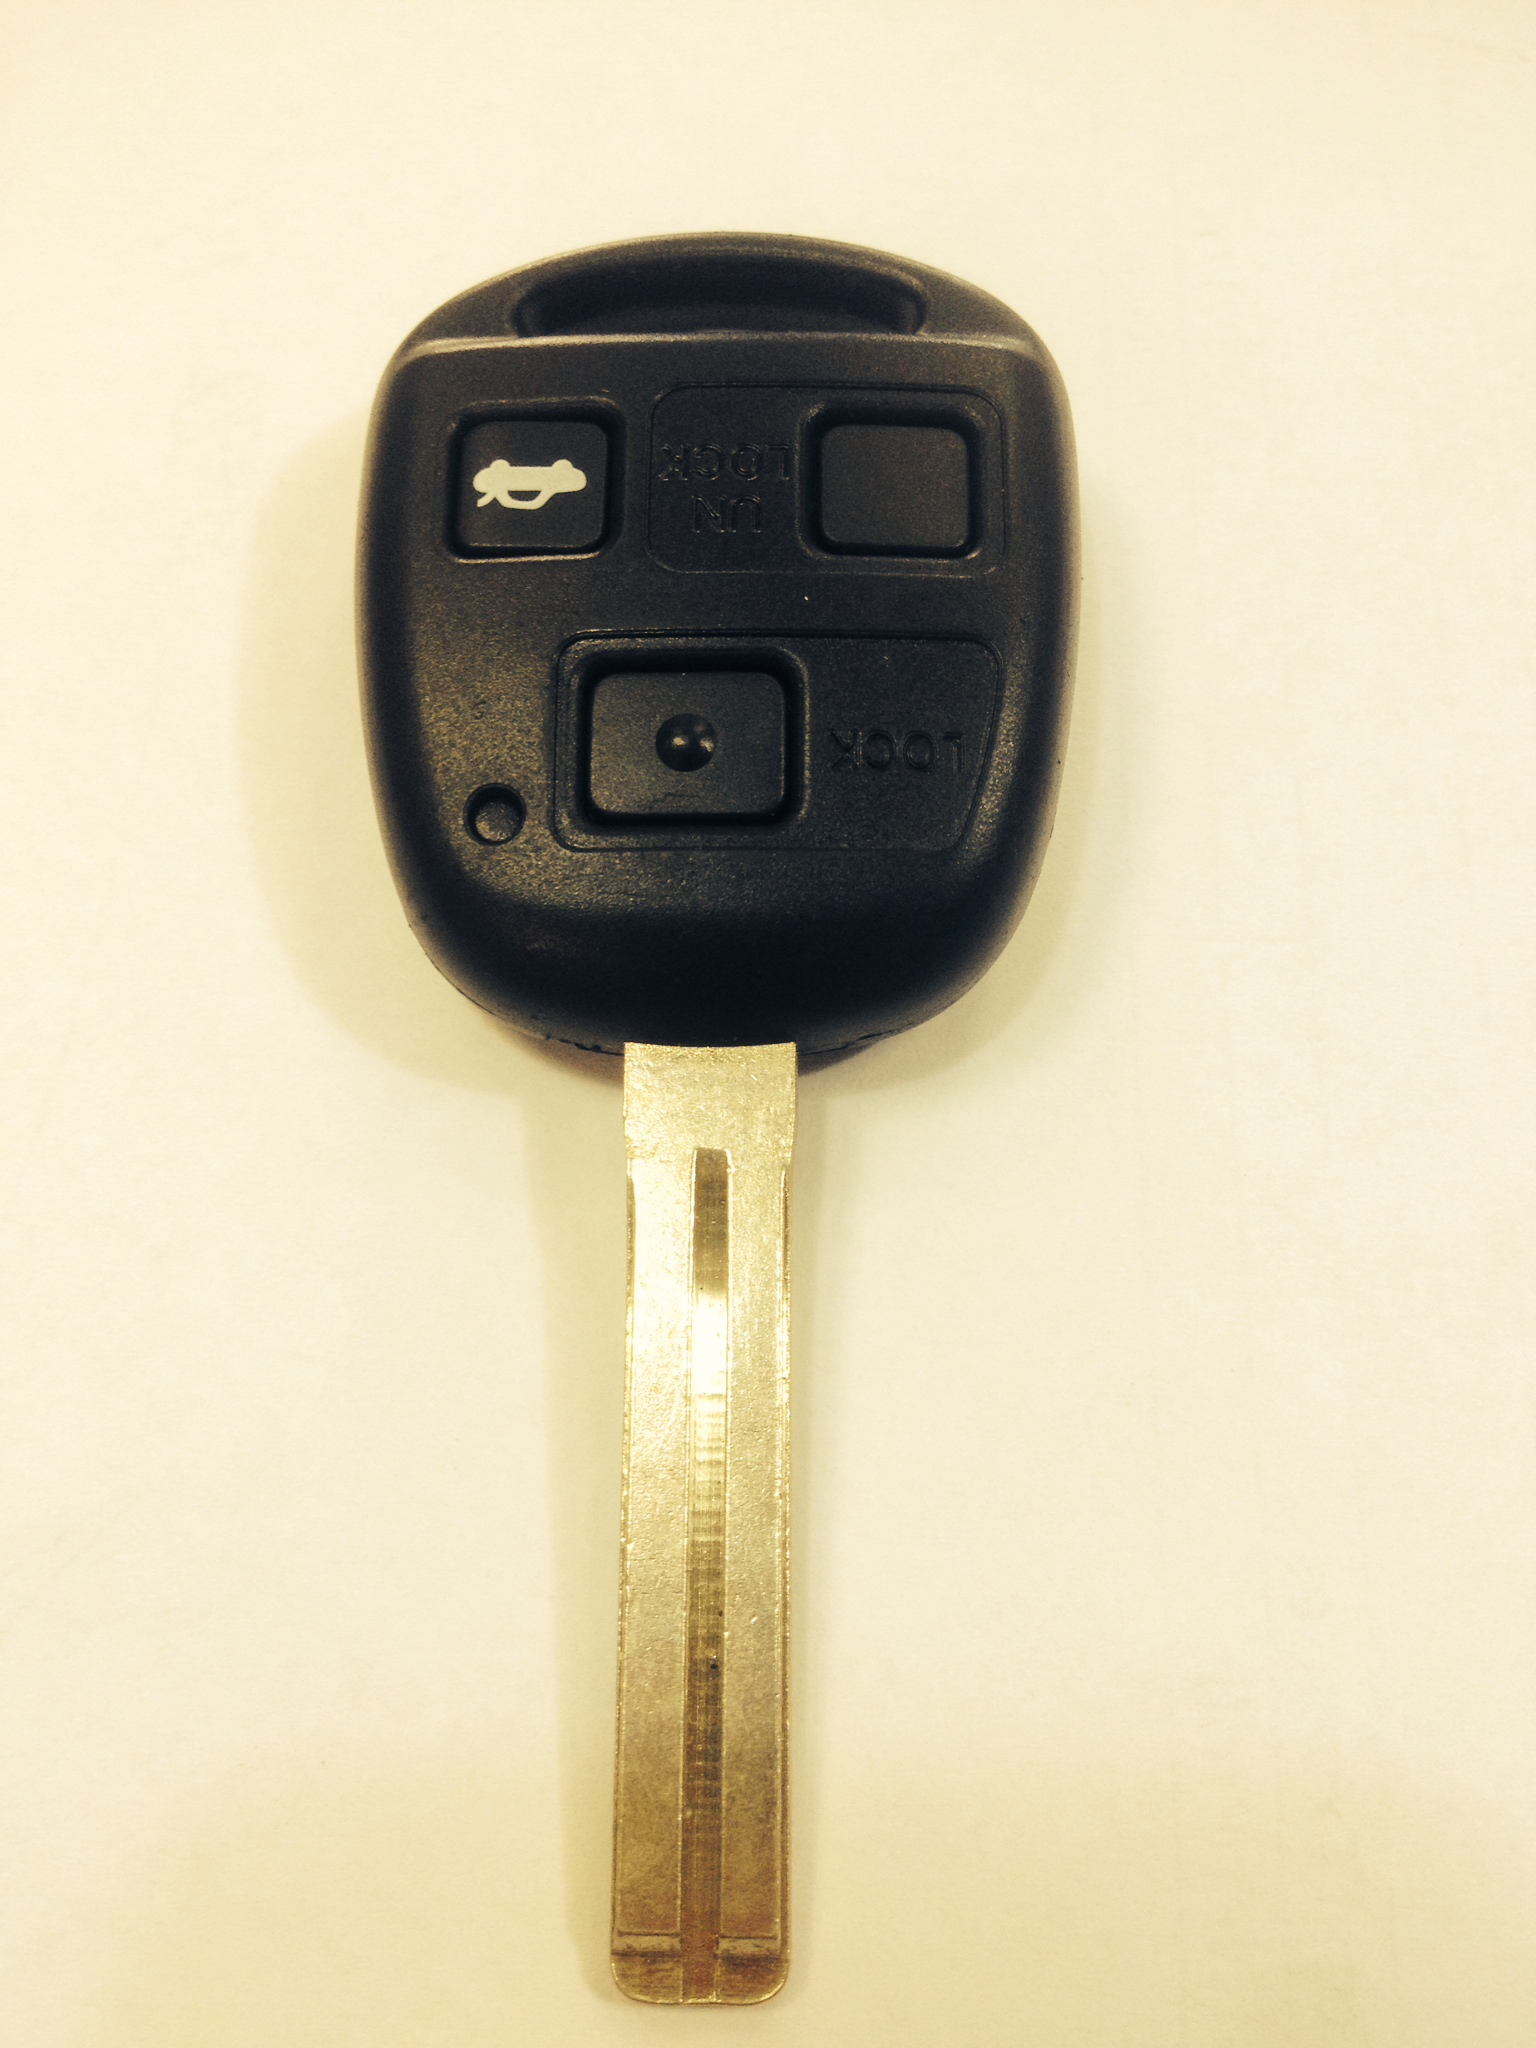 Car Key Replacement – Home Run Locksmith Service, Call Toll